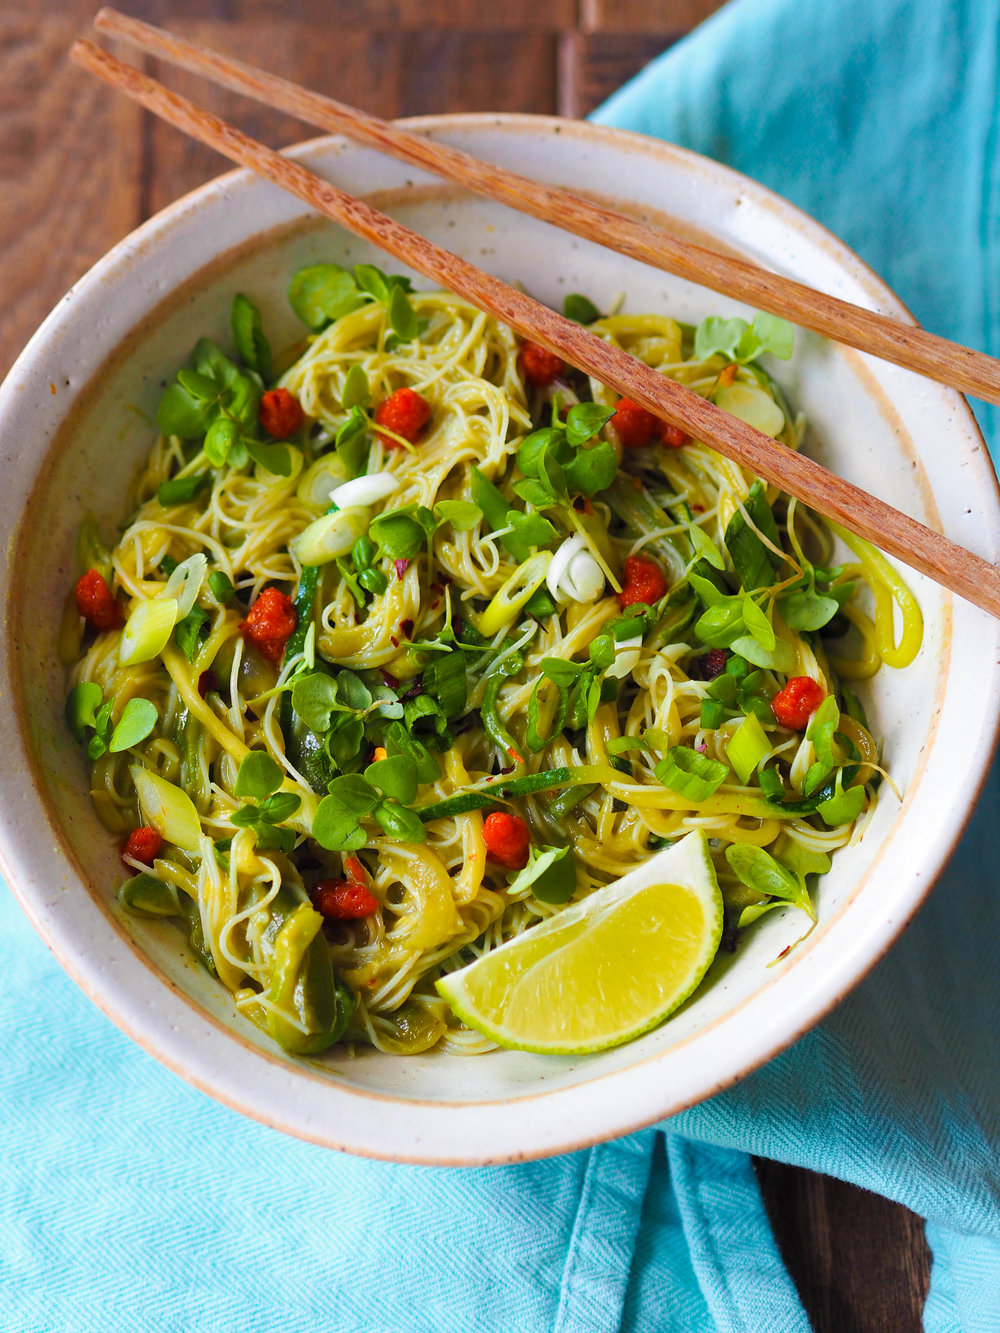 Green Curry Avocado Noodles made with a vegan curry sauce made from avocado!